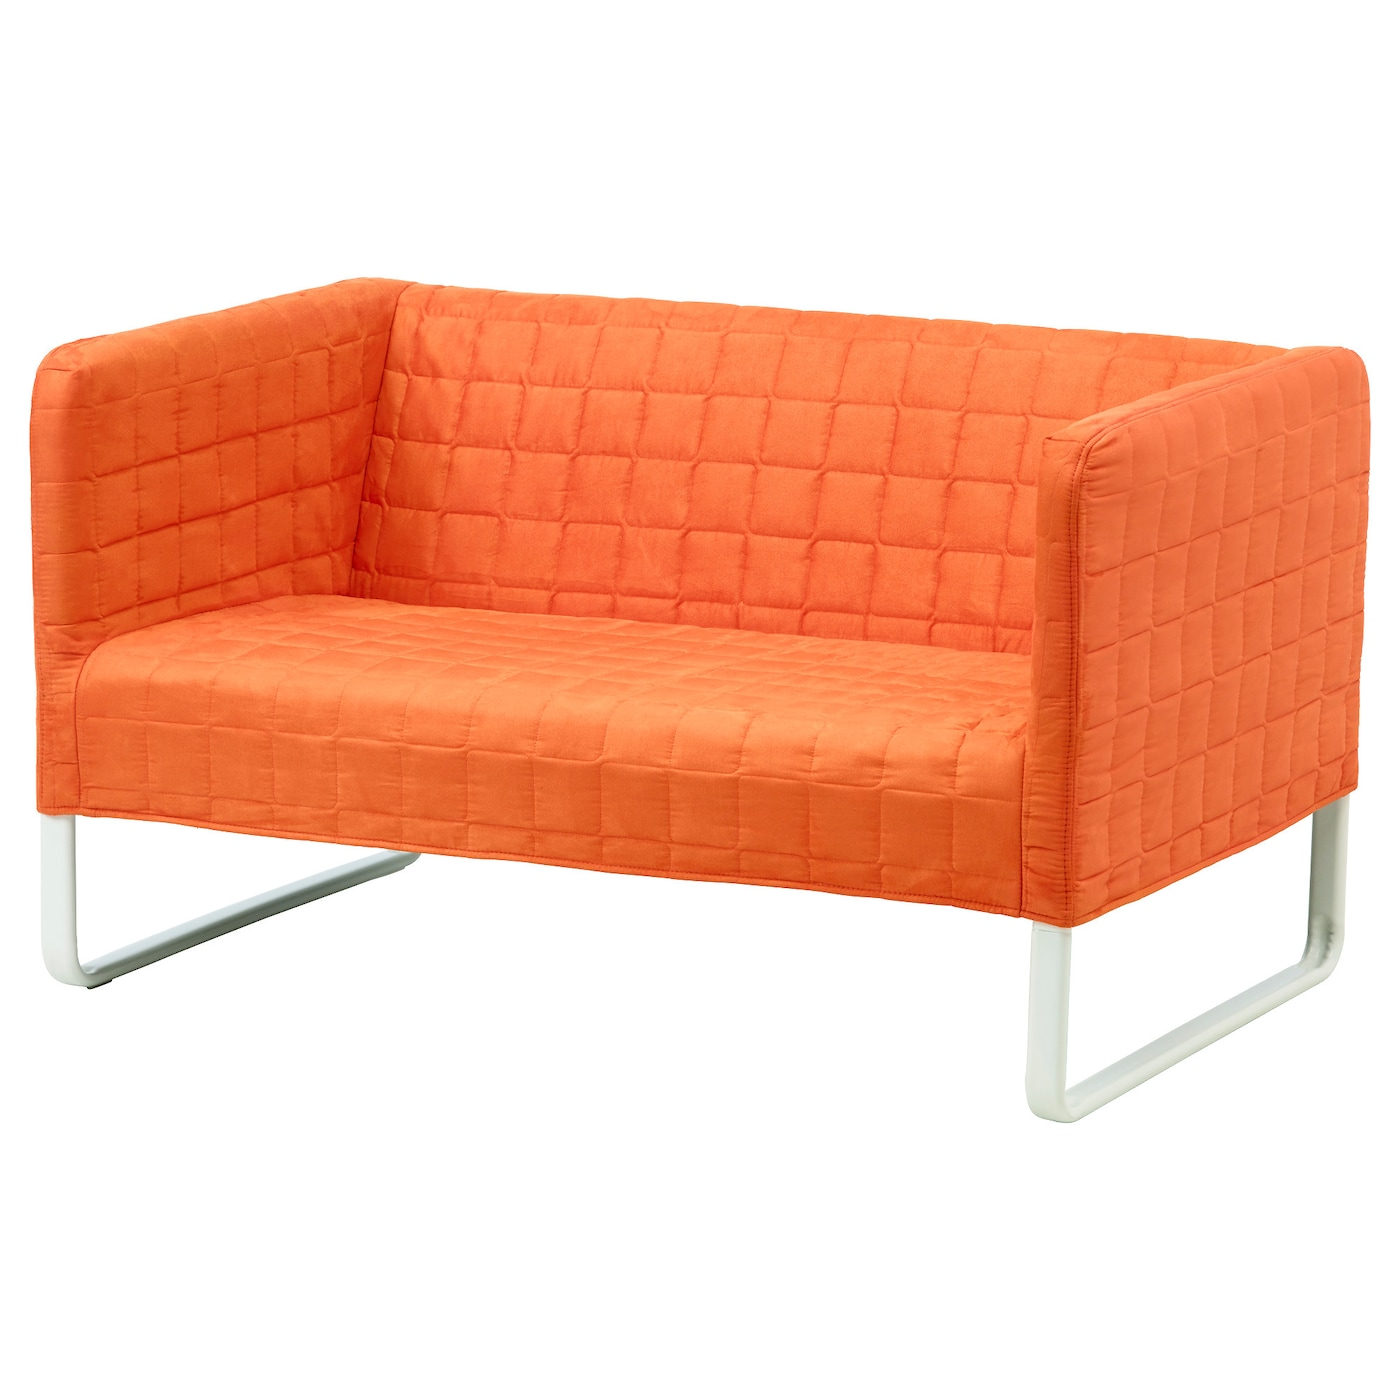 Knopparp 2 seat sofa orange ikea for Sofas de piel economicos